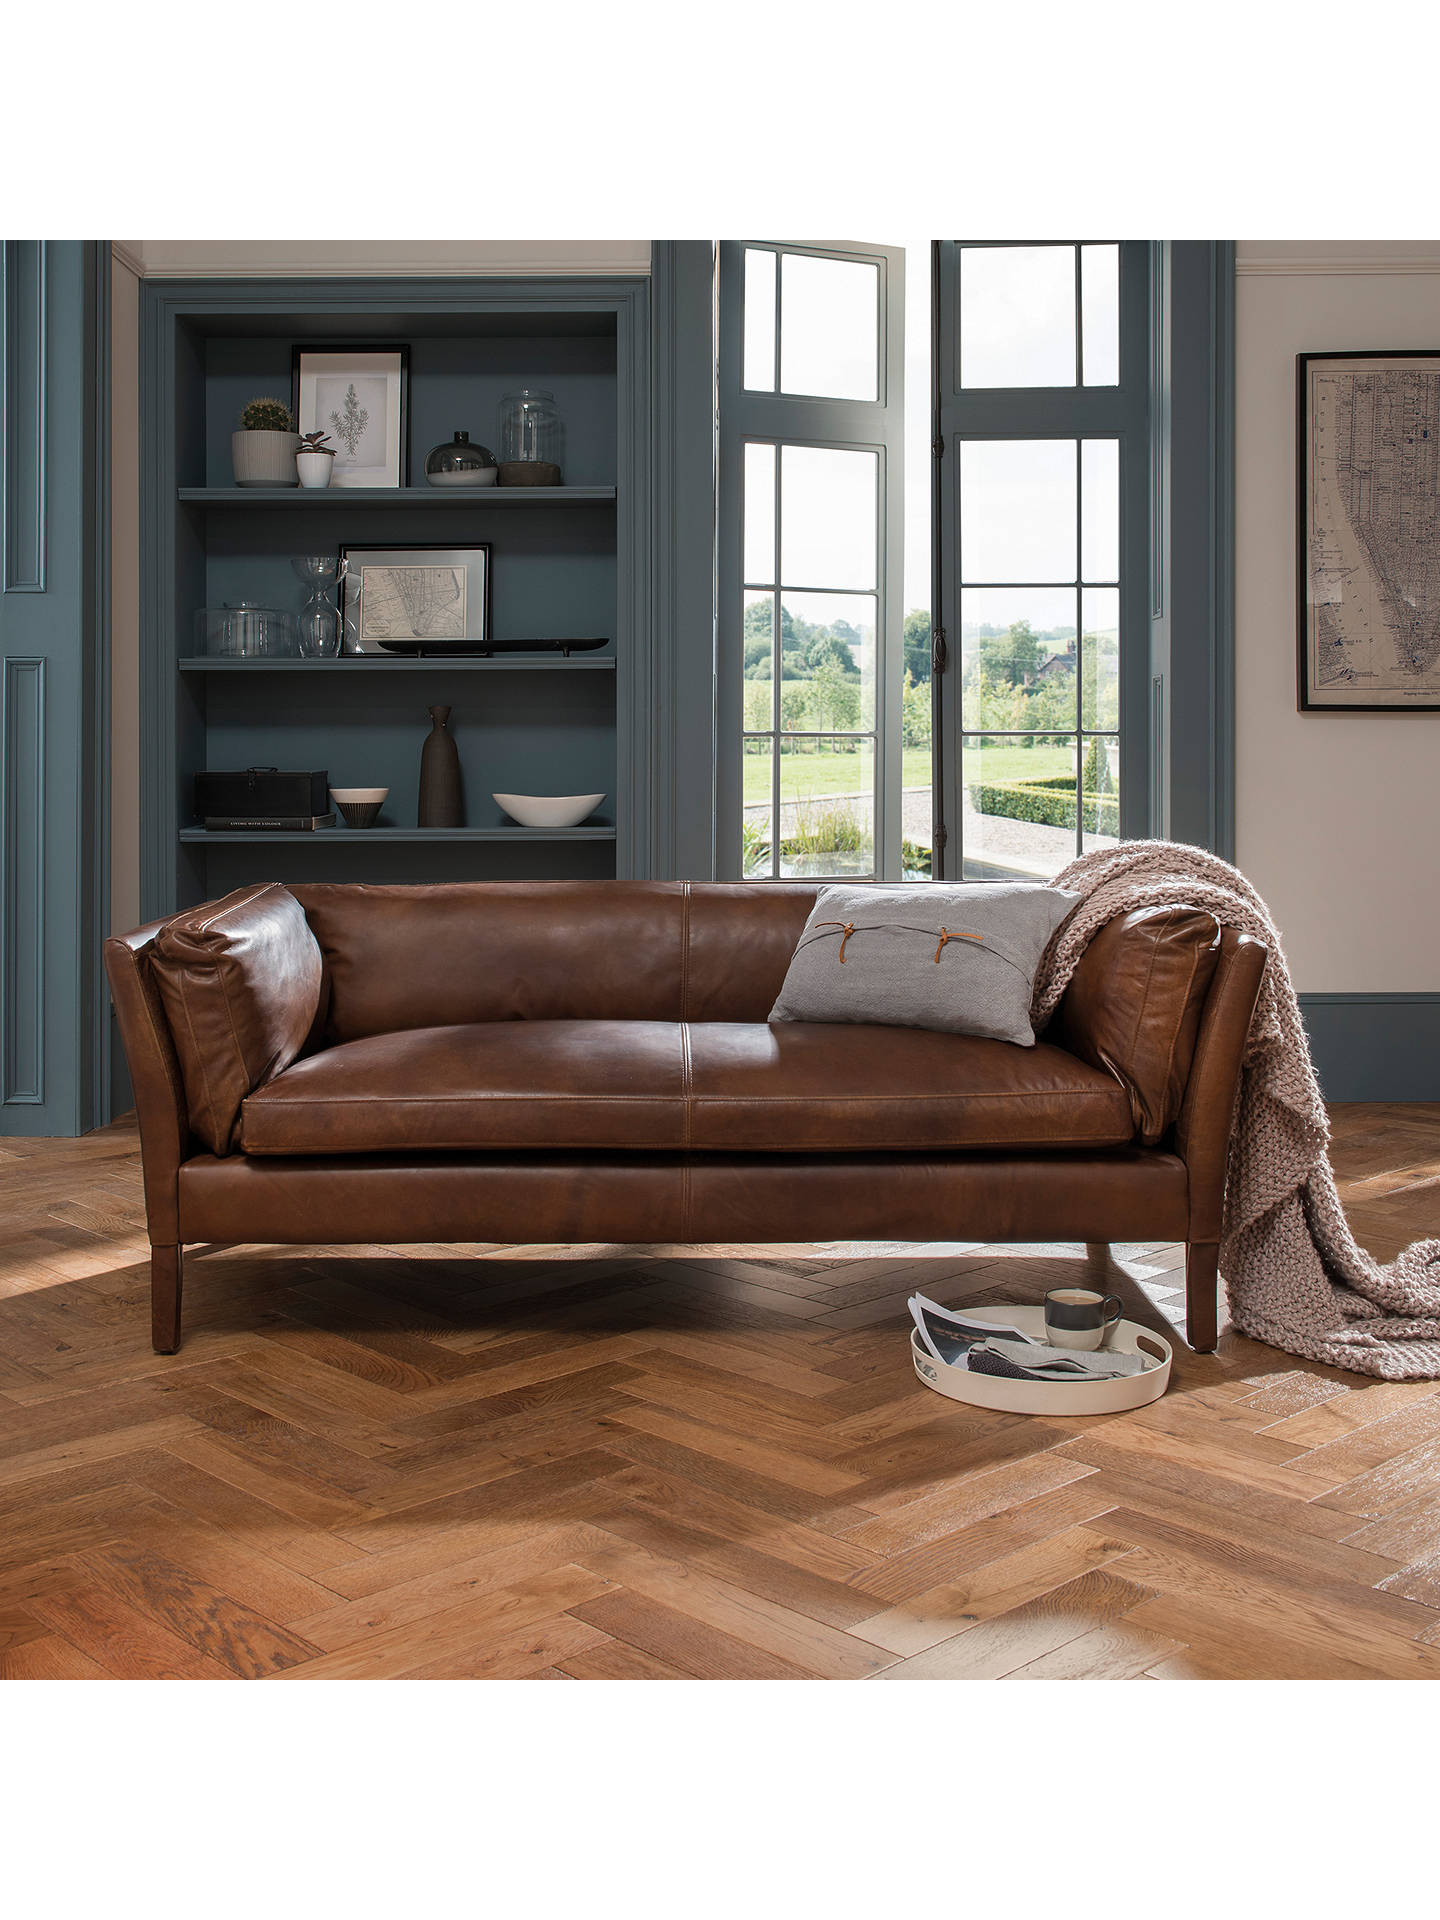 Buy Halo Groucho Medium 2 Seater Leather Sofa, Riders Nut Online at johnlewis.com